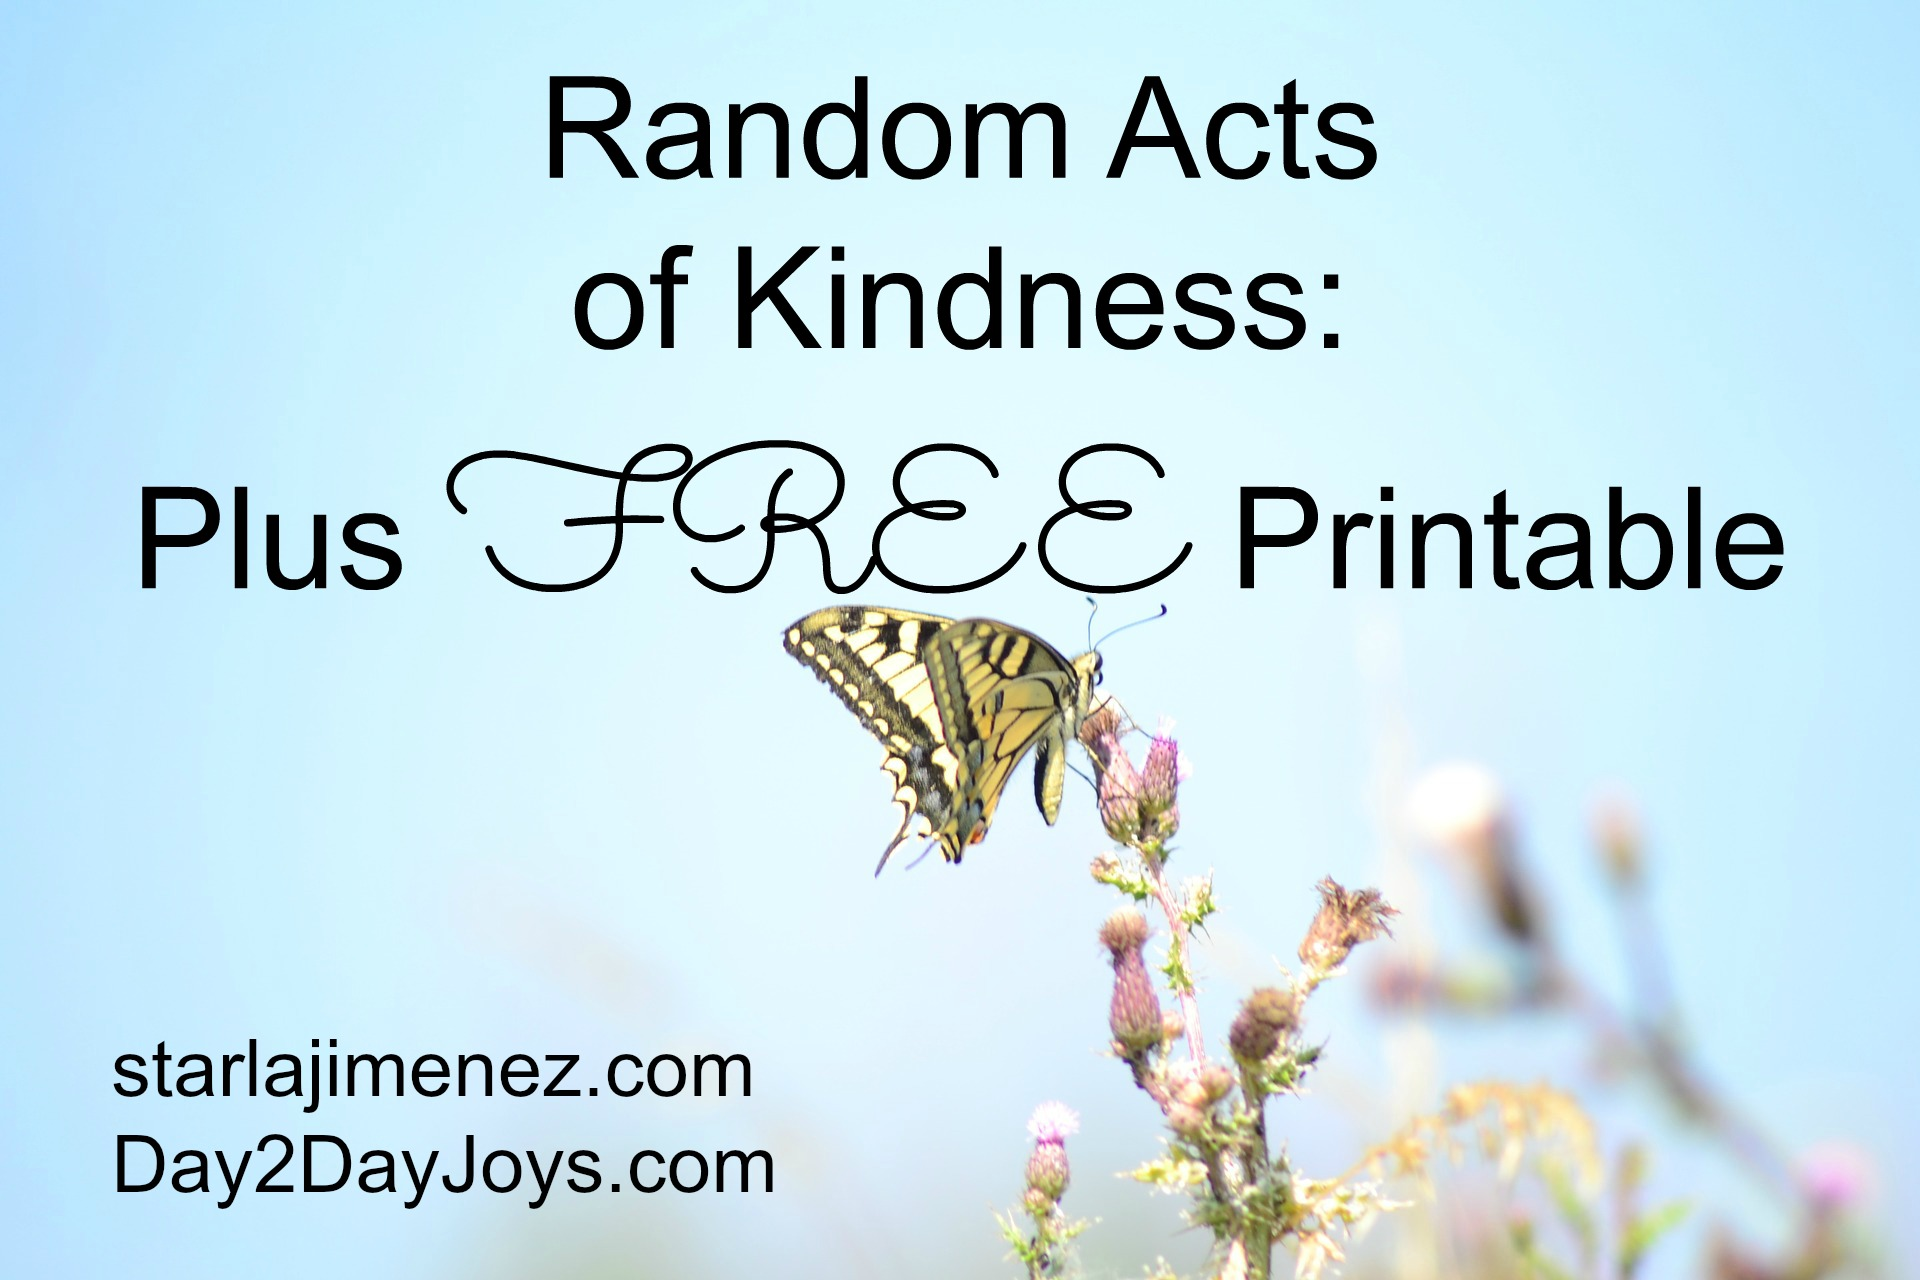 random acts of kindness plus printable dayday joys 5 random acts of kindness plus printable